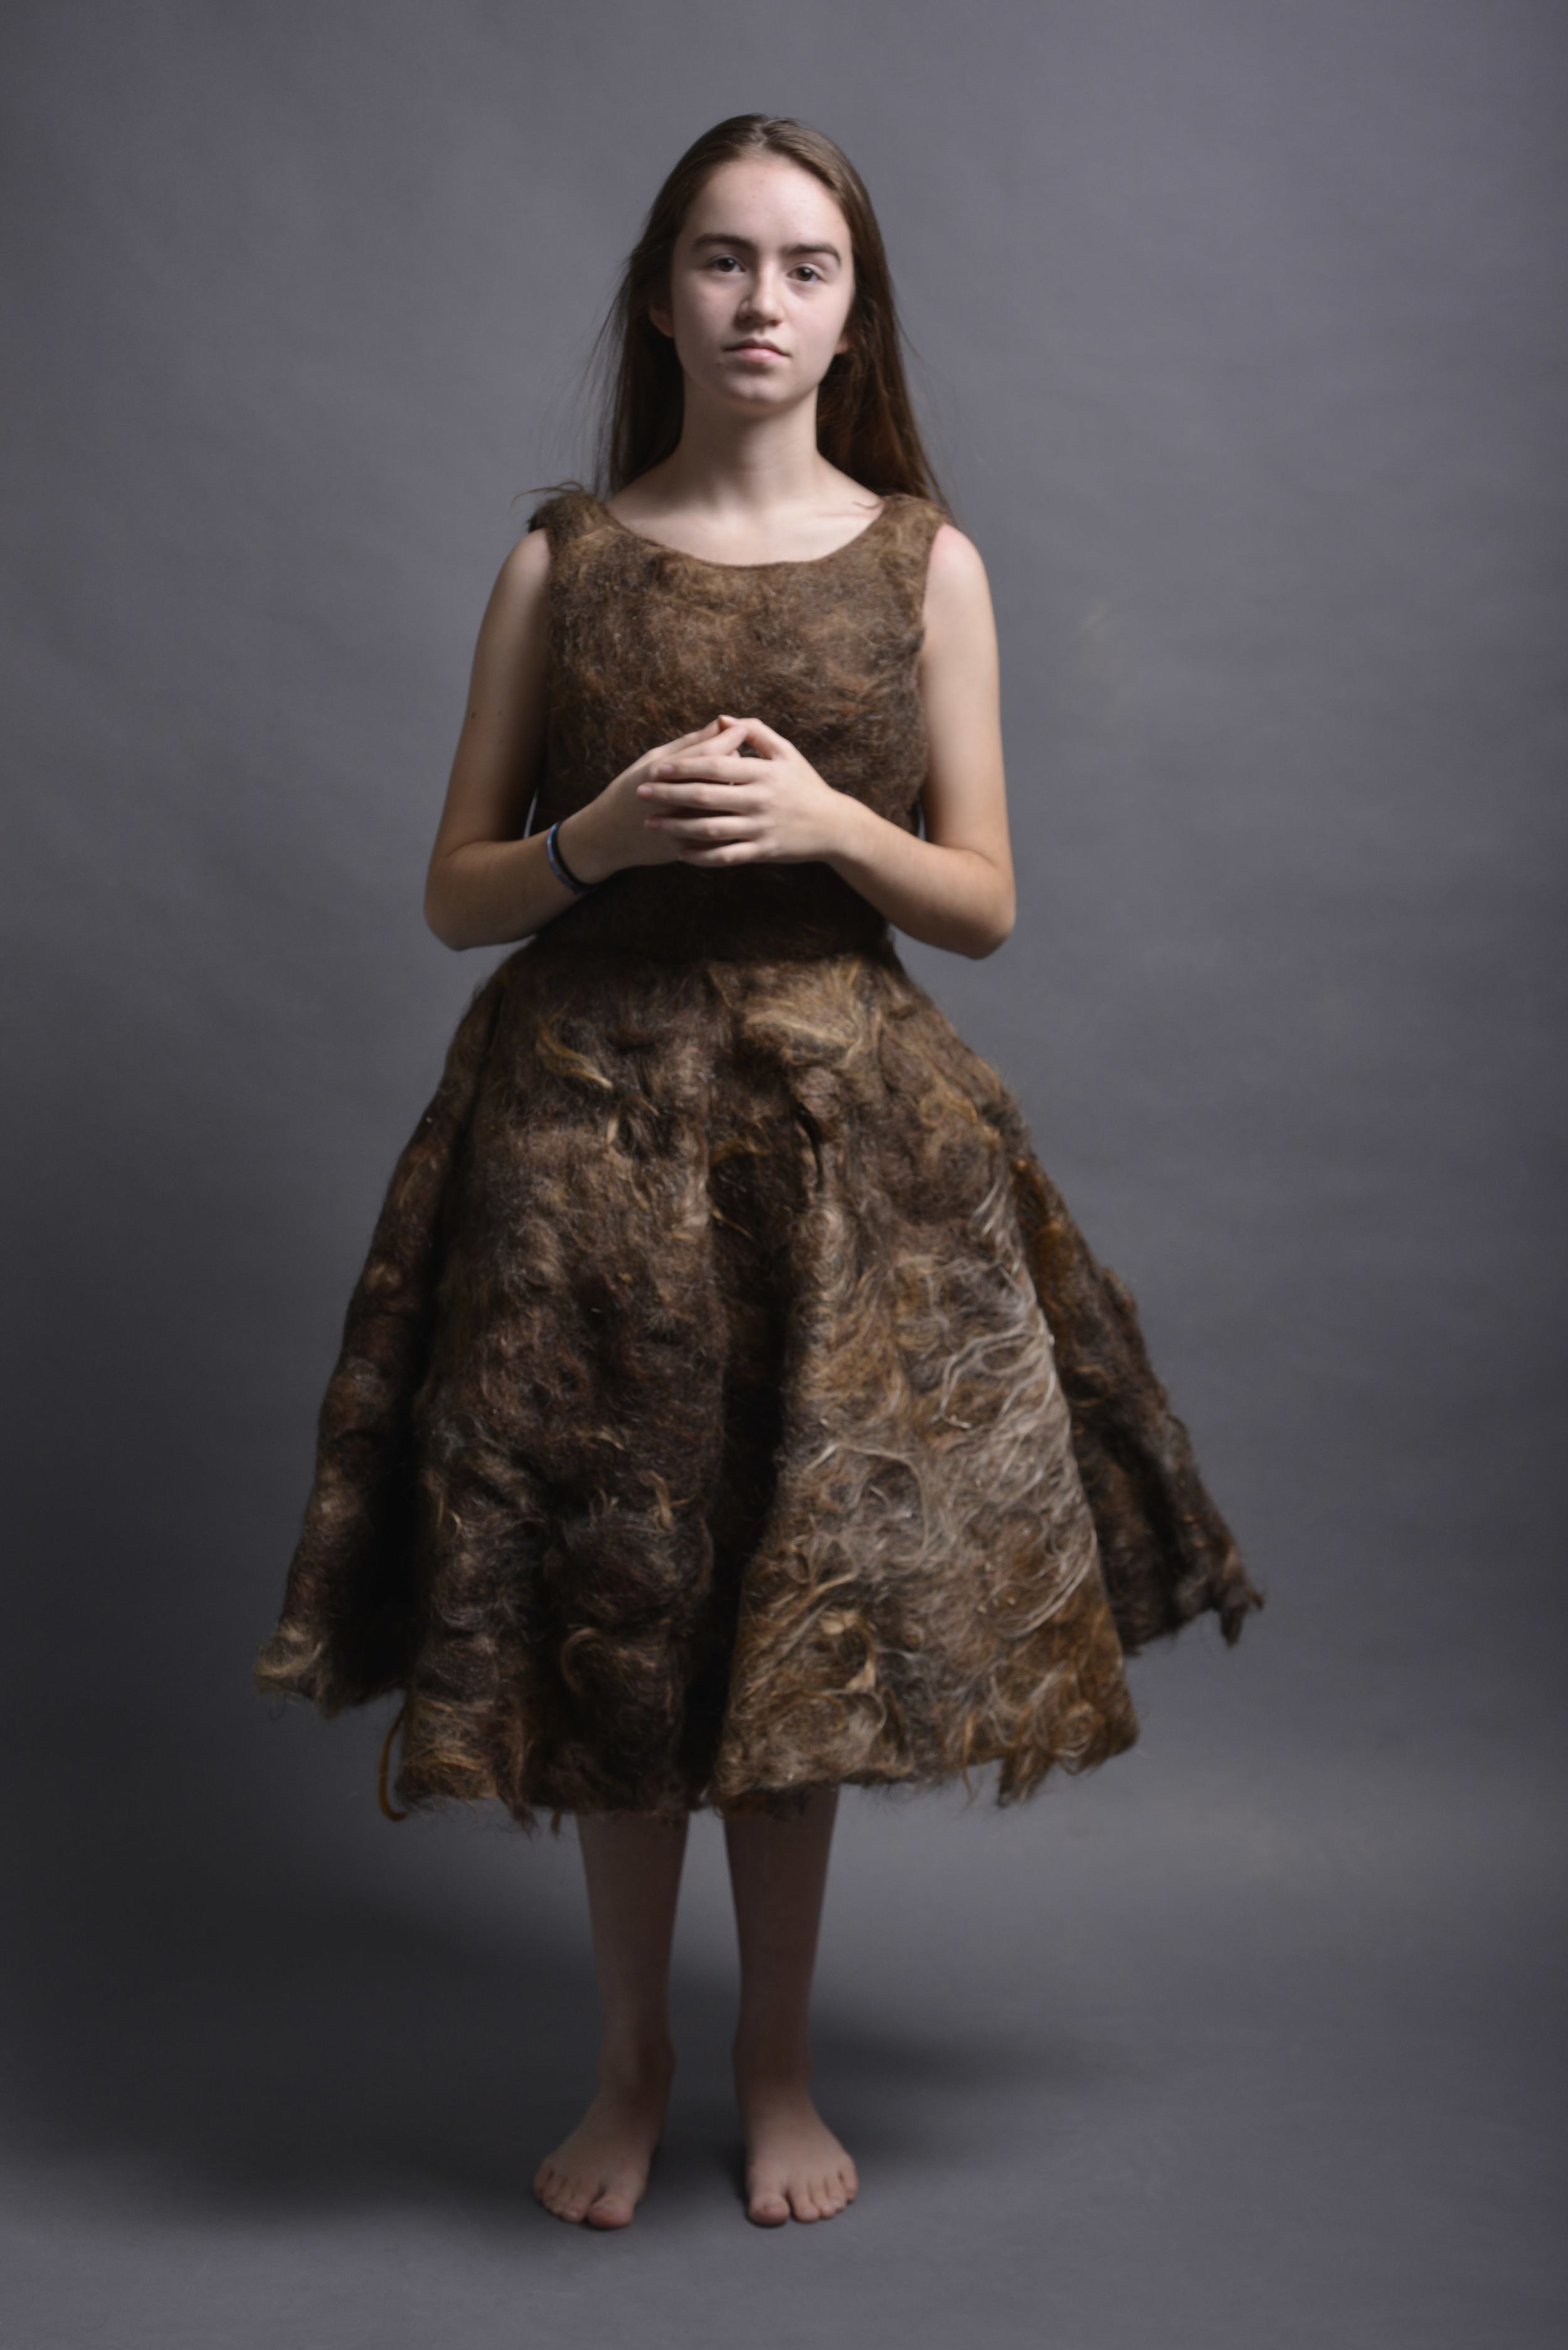 Annabel in her human hair felted dress